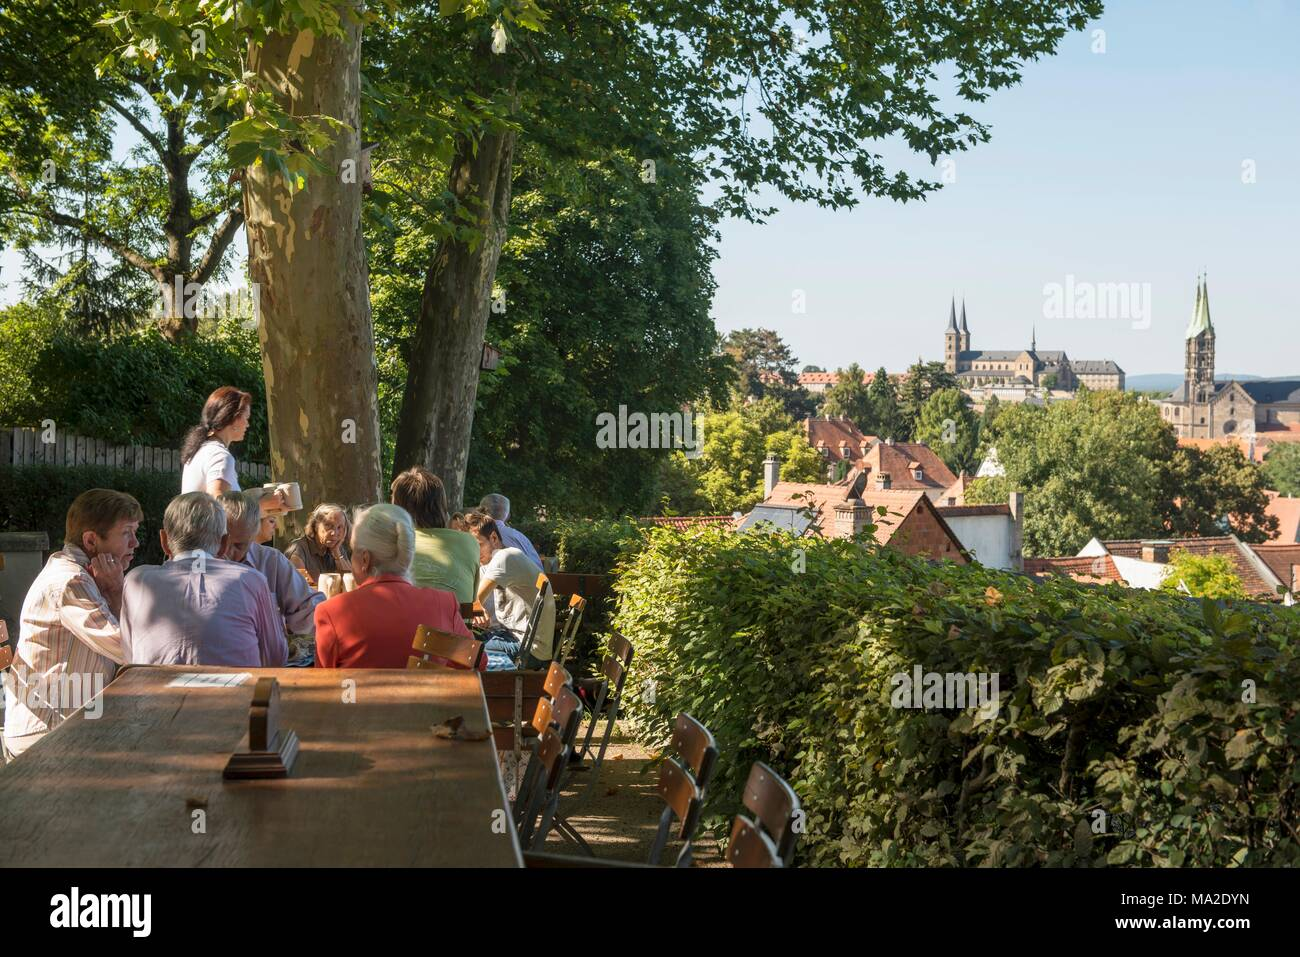 The Brauerei Spezial beer garden in Bamberg - Stock Image